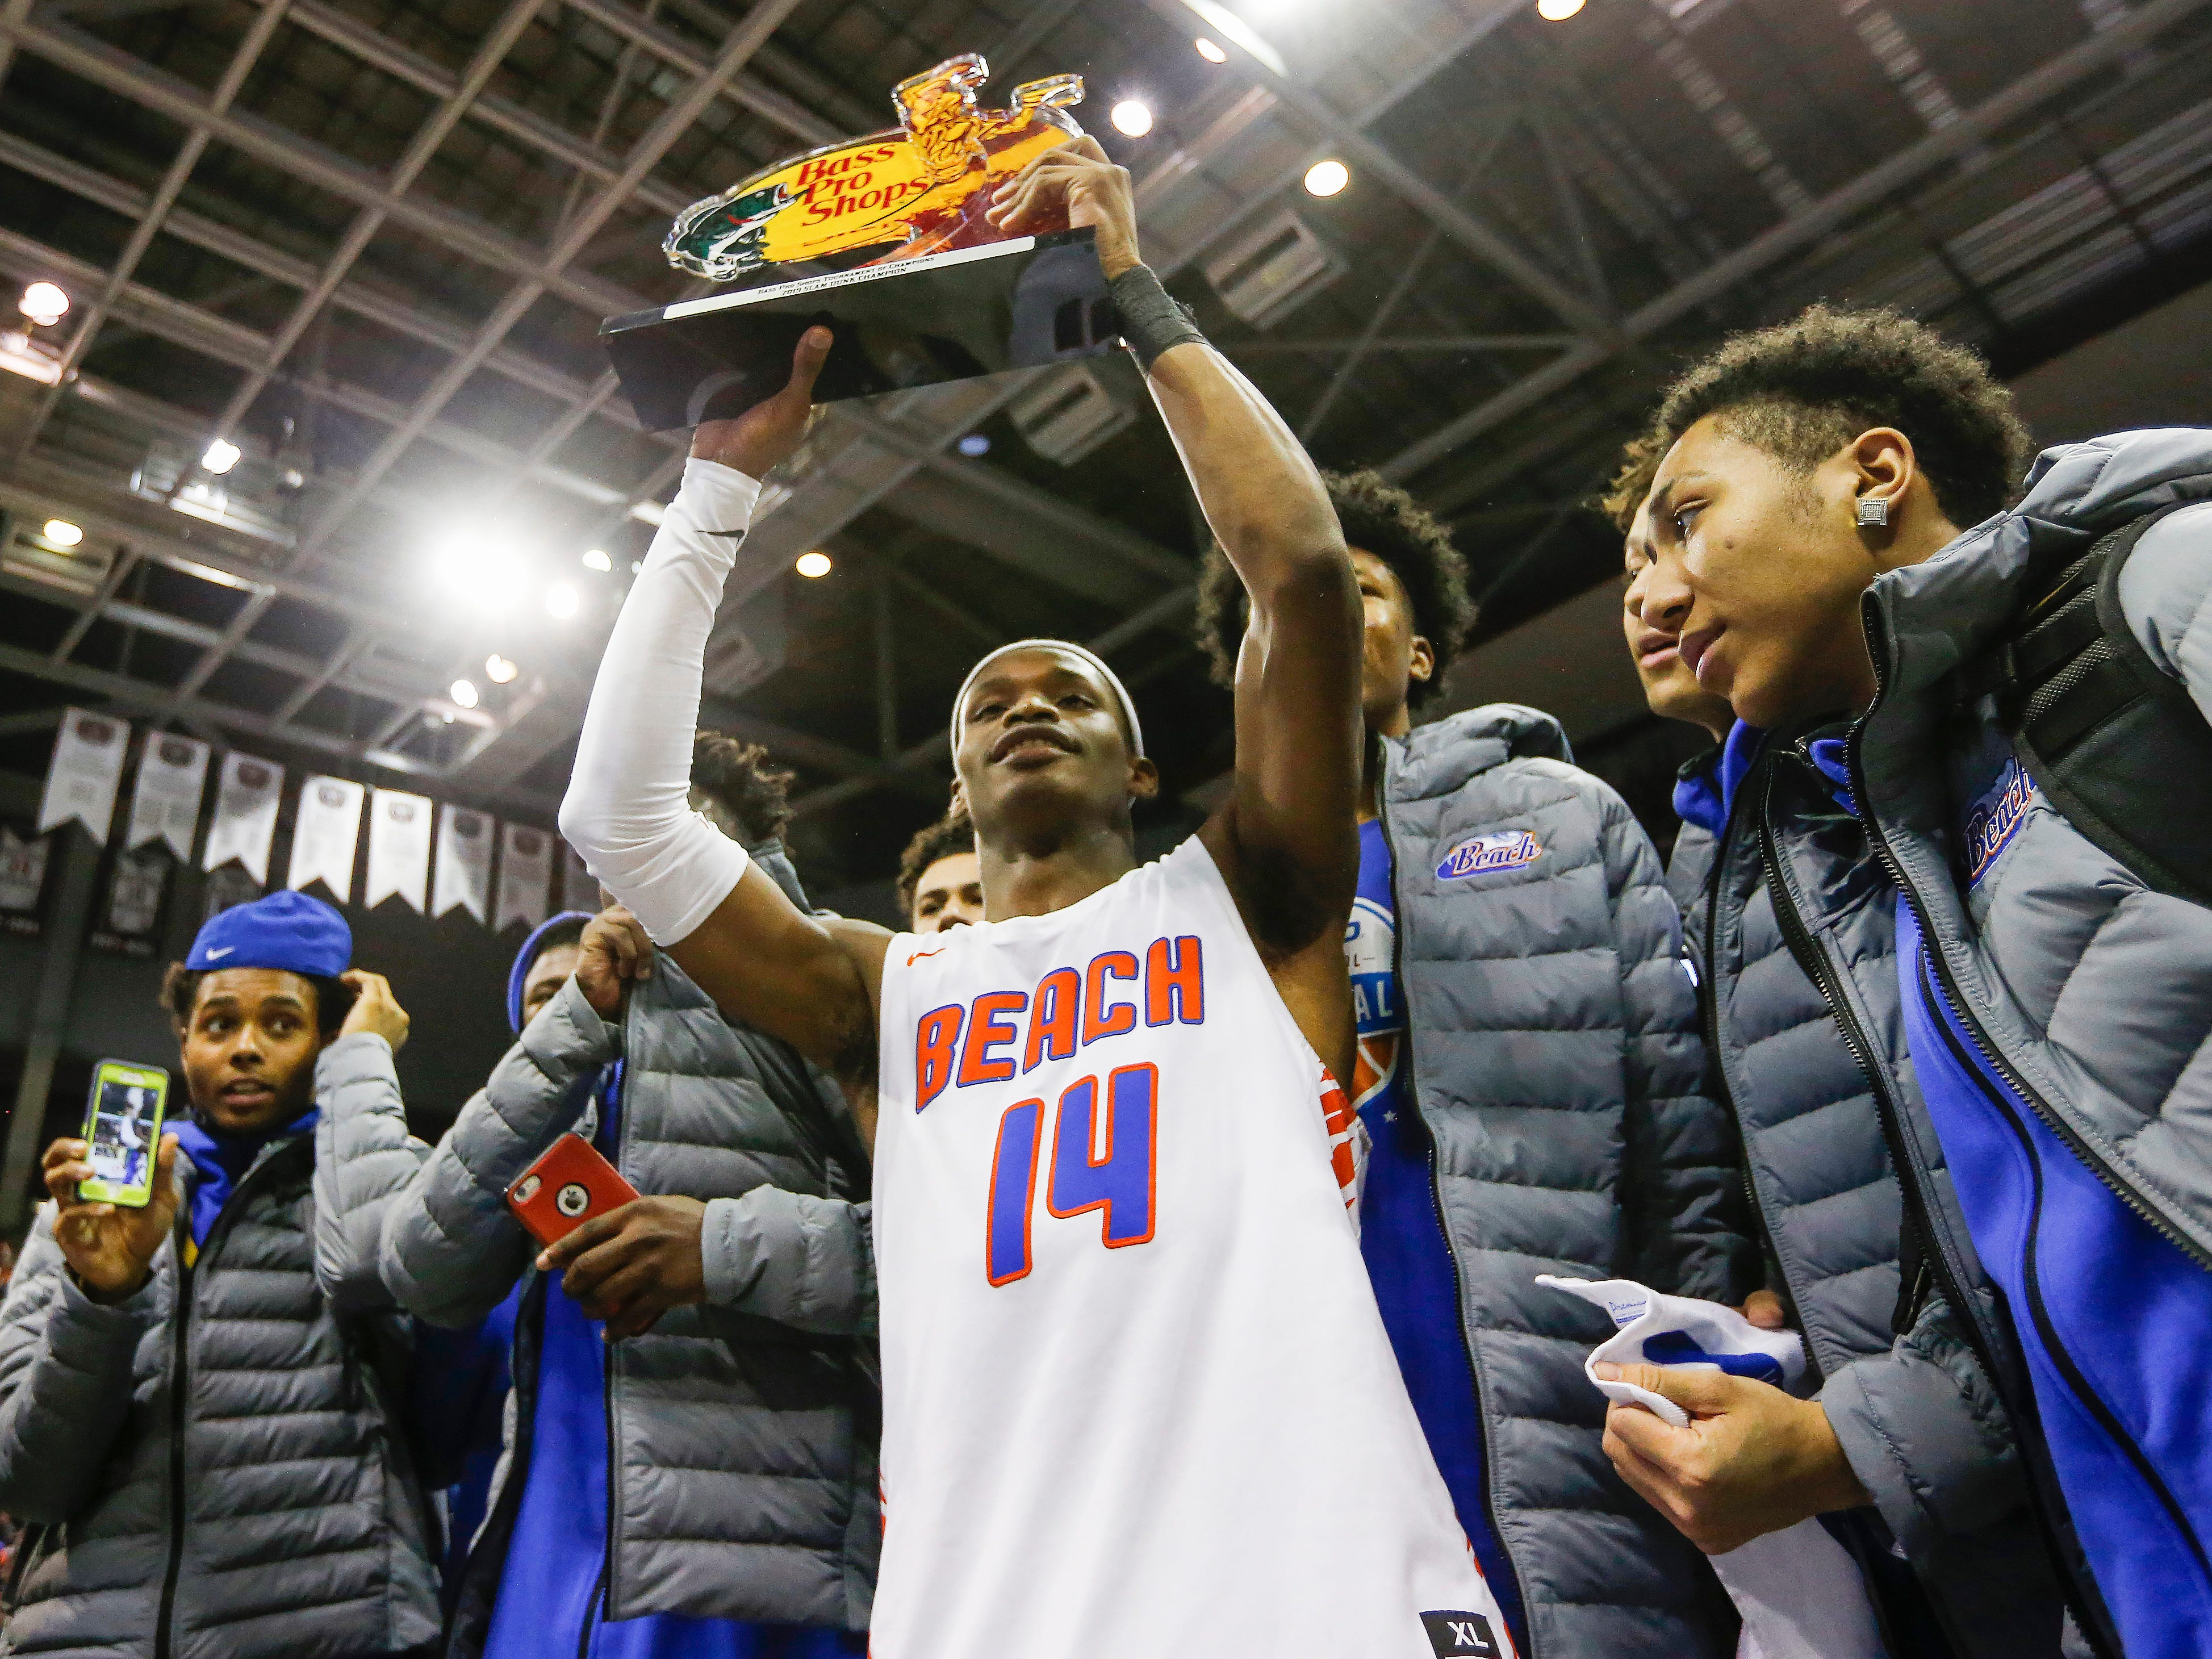 Micah Monroe, of Rainier Beach, holds up his first place trophy from the slam dunk contest at the Bass Pro Shops Tournament of Champions at JQH Arena on Saturday, Jan. 19, 2019.